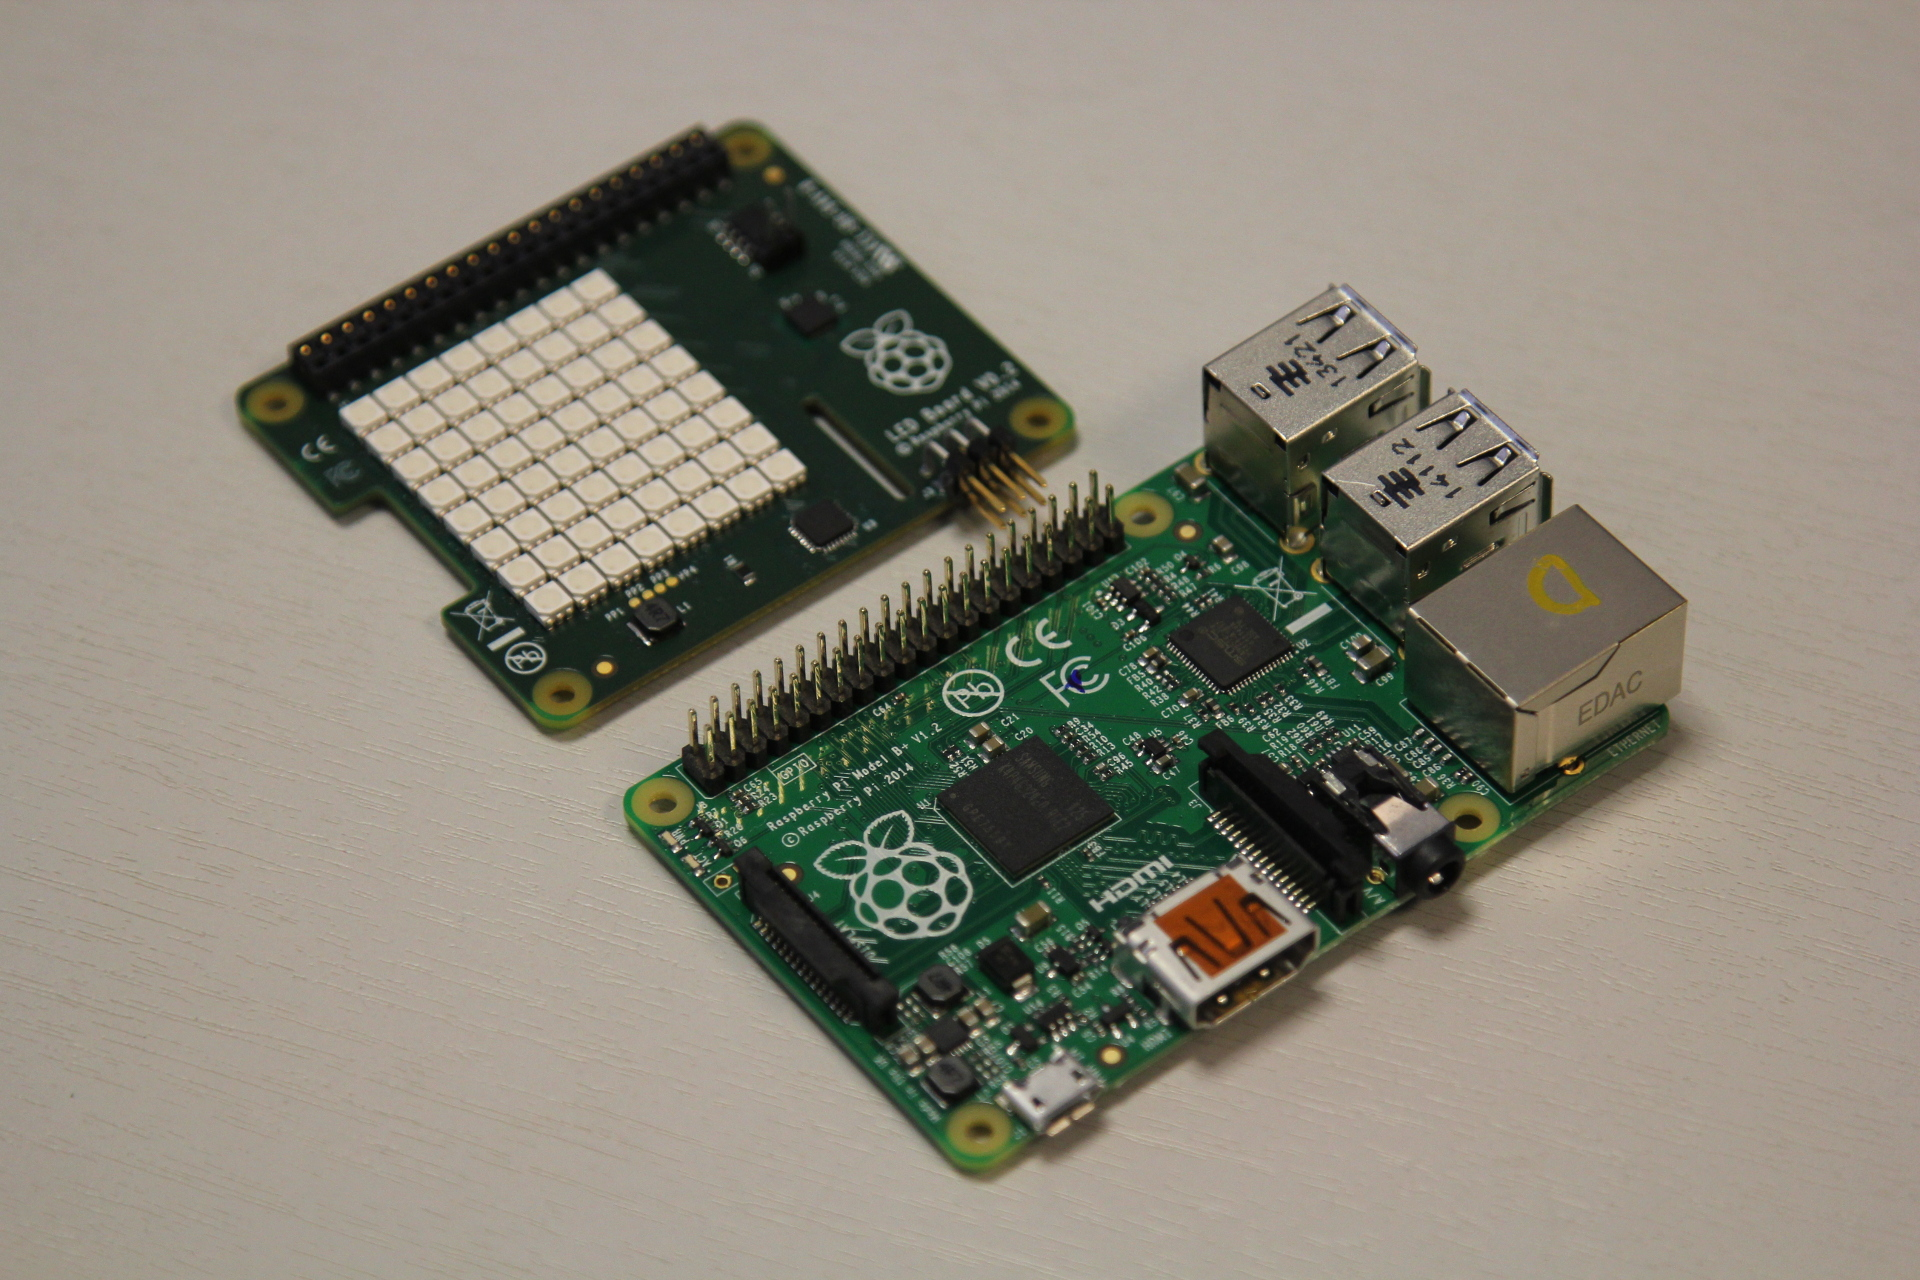 Raspberry Pi Blog News Announcements And Ideas Flying Hobby Sharing Agic Print Printing Circuit Boards With